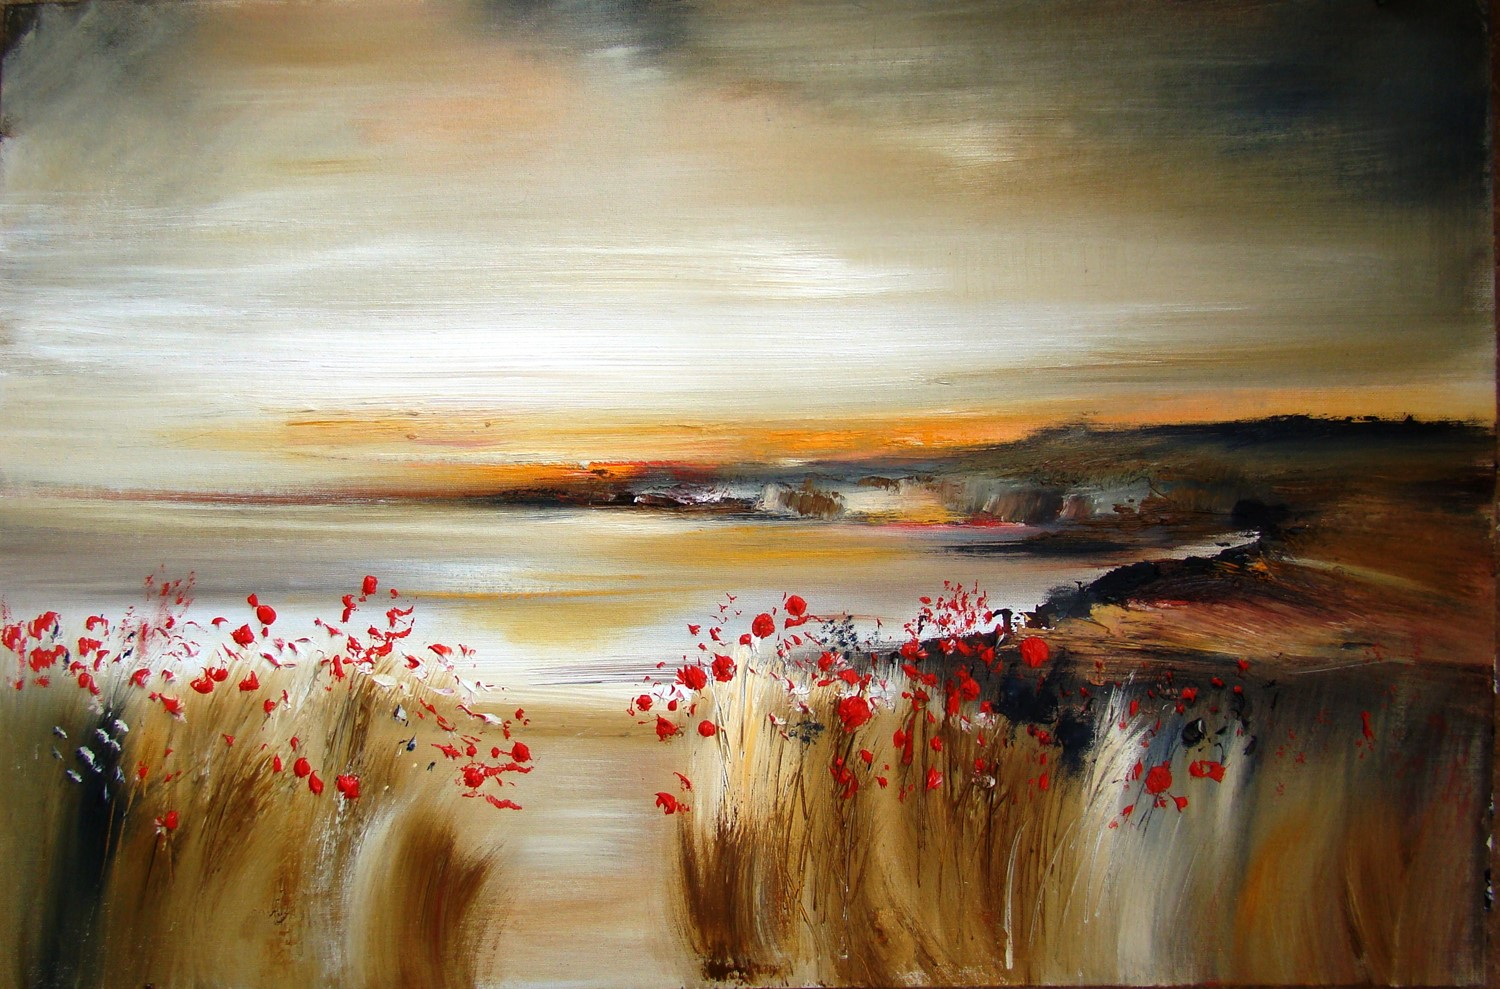 'Poppies as the sun goes down' by artist Rosanne Barr